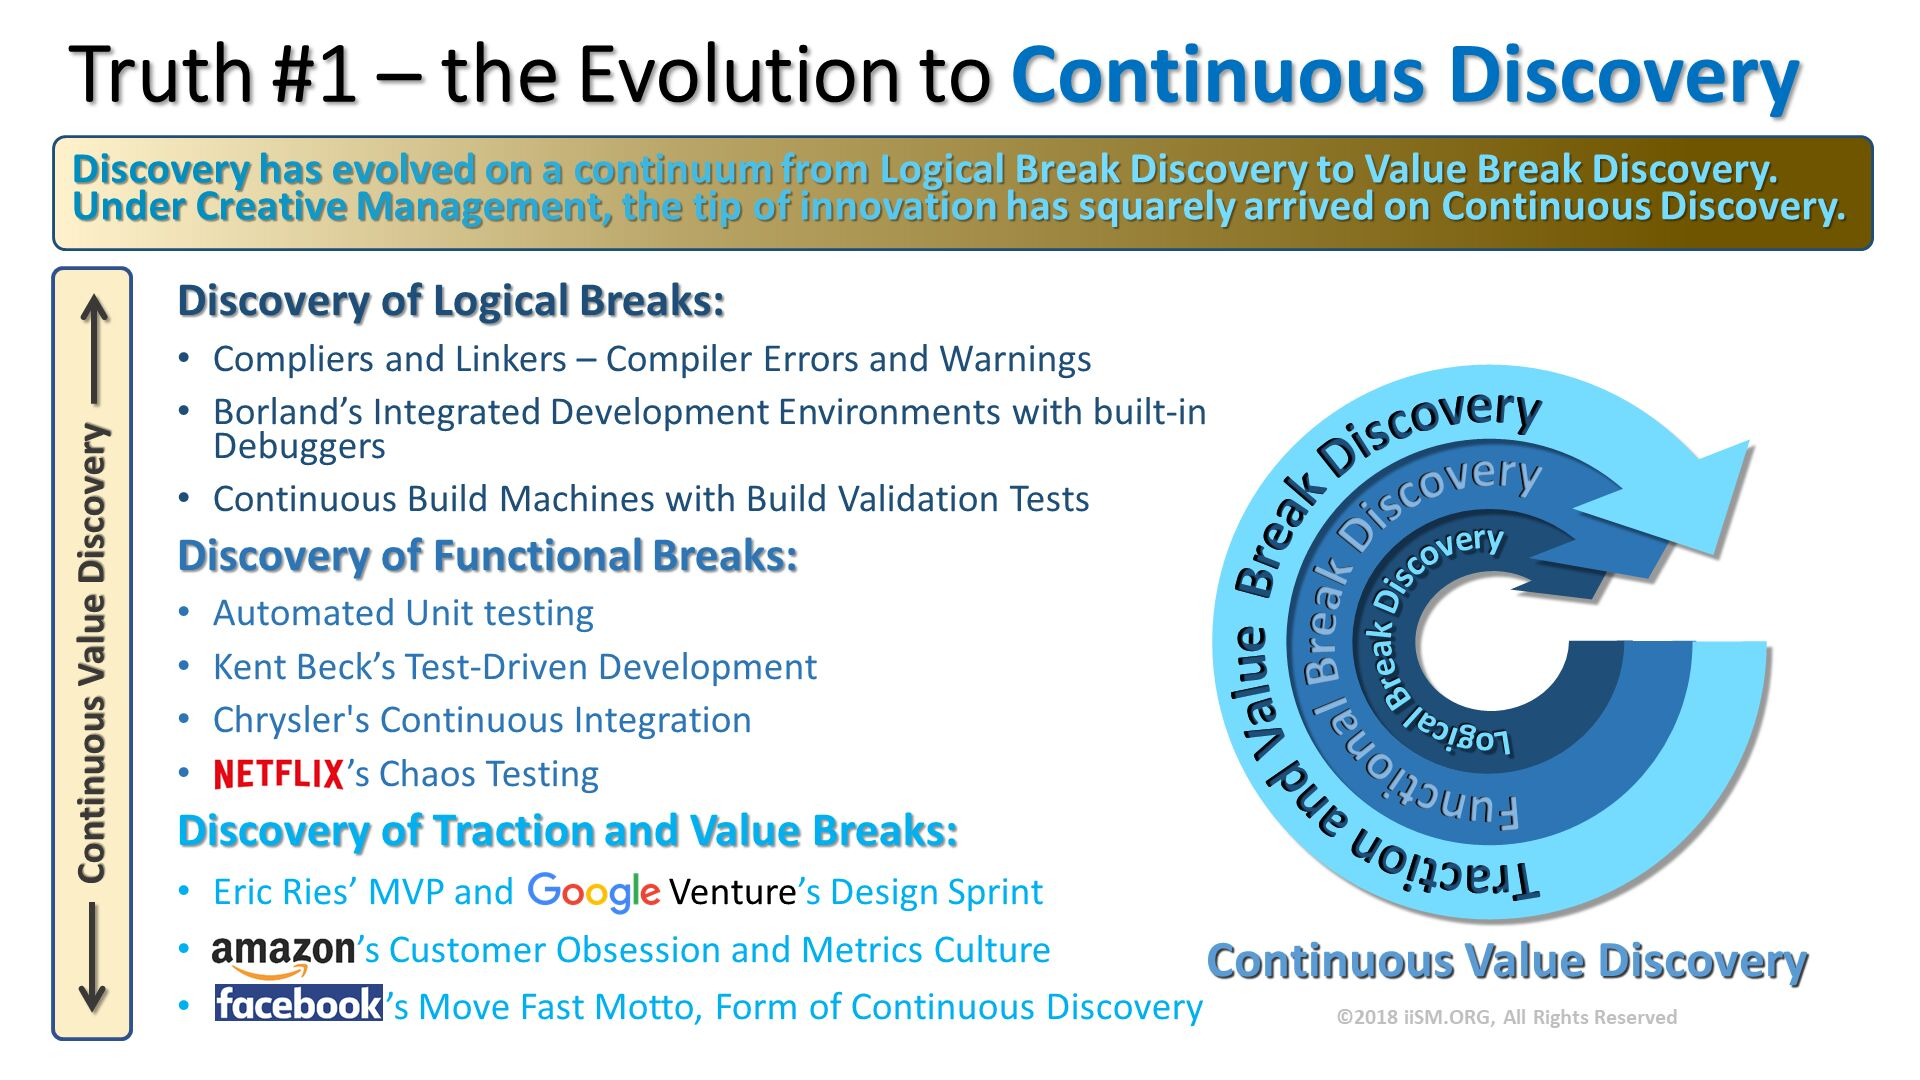 Truth #1 – the Evolution to Continuous Discovery. Discovery of Logical Breaks: Compliers and Linkers – Compiler Errors and Warnings Borland's Integrated Development Environments with built-in Debuggers Continuous Build Machines with Build Validation Tests Discovery of Functional Breaks: Automated Unit testing Kent Beck's Test-Driven Development Chrysler's Continuous Integration NETFLIX's Chaos Testing  Discovery of Traction and Value Breaks: Eric Ries' MVP and                 Venture's Design Sprint                 's Customer Obsession and Metrics Culture Facebook  's Move Fast Motto, Form of Continuous Discovery . Discovery has evolved on a continuum from Logical Break Discovery to Value Break Discovery.  Under Creative Management, the tip of innovation has squarely arrived on Continuous Discovery.